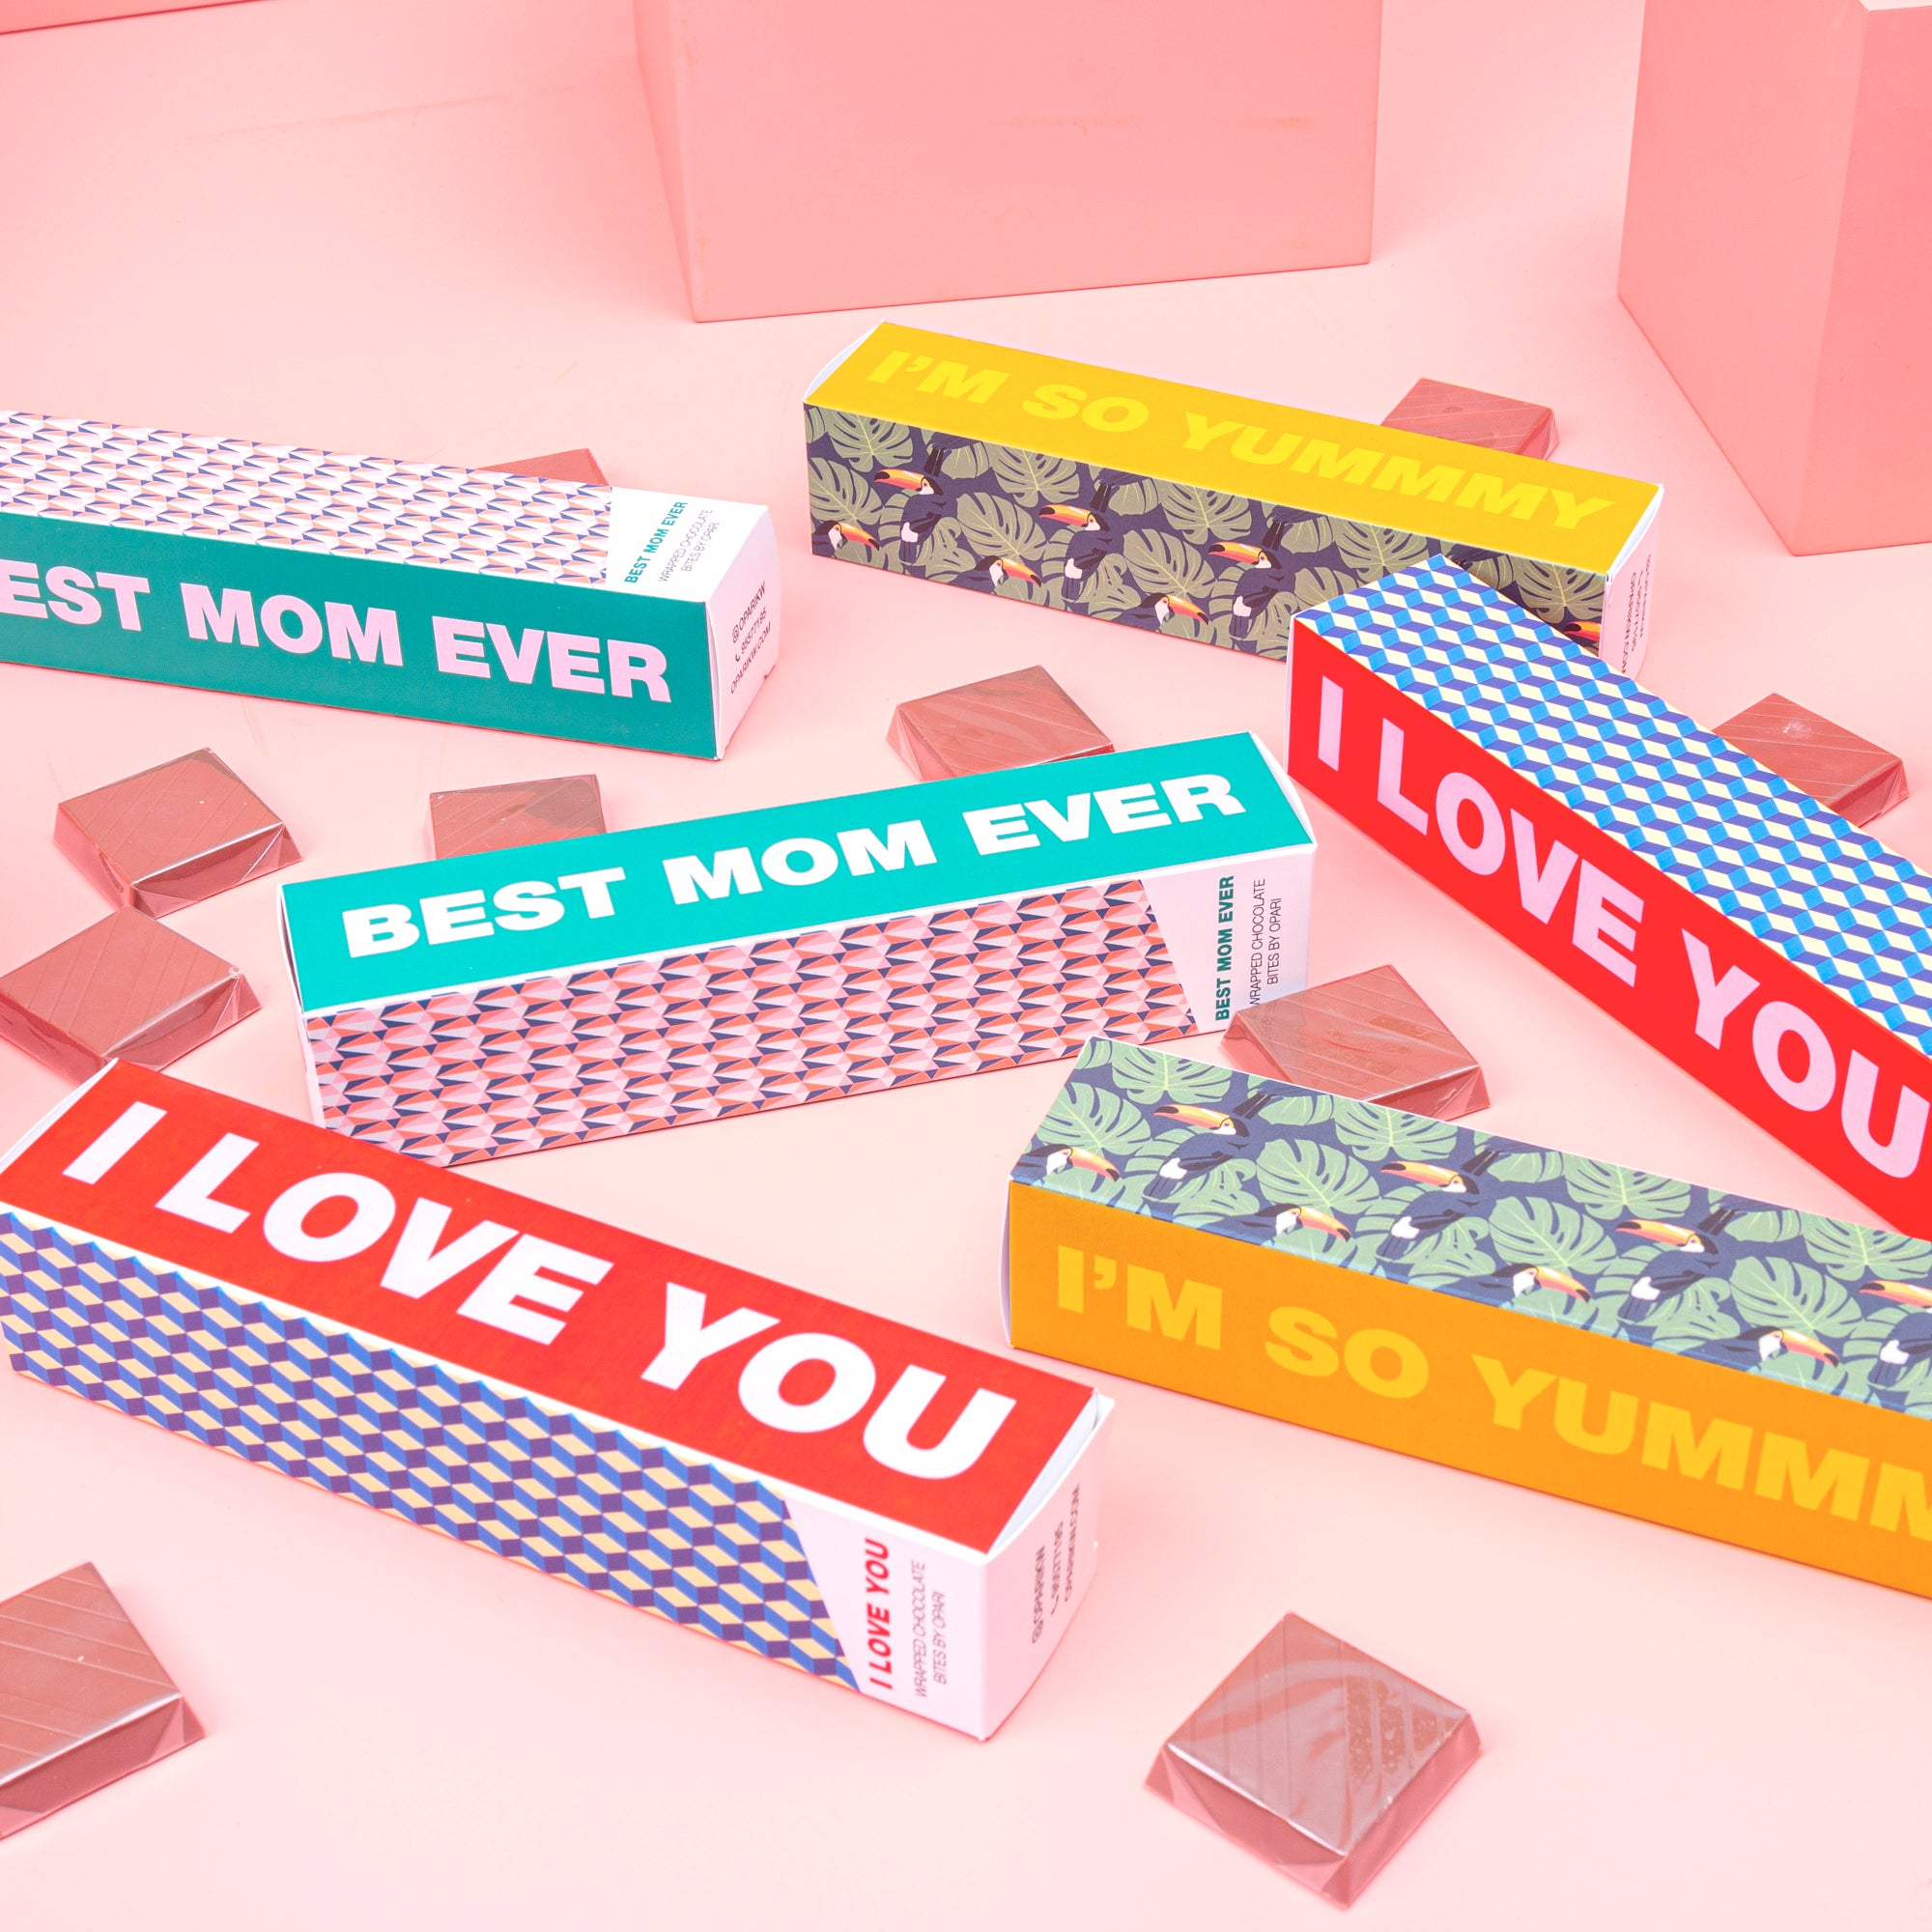 Opari Chocolate Boxes - Best Mom Ever